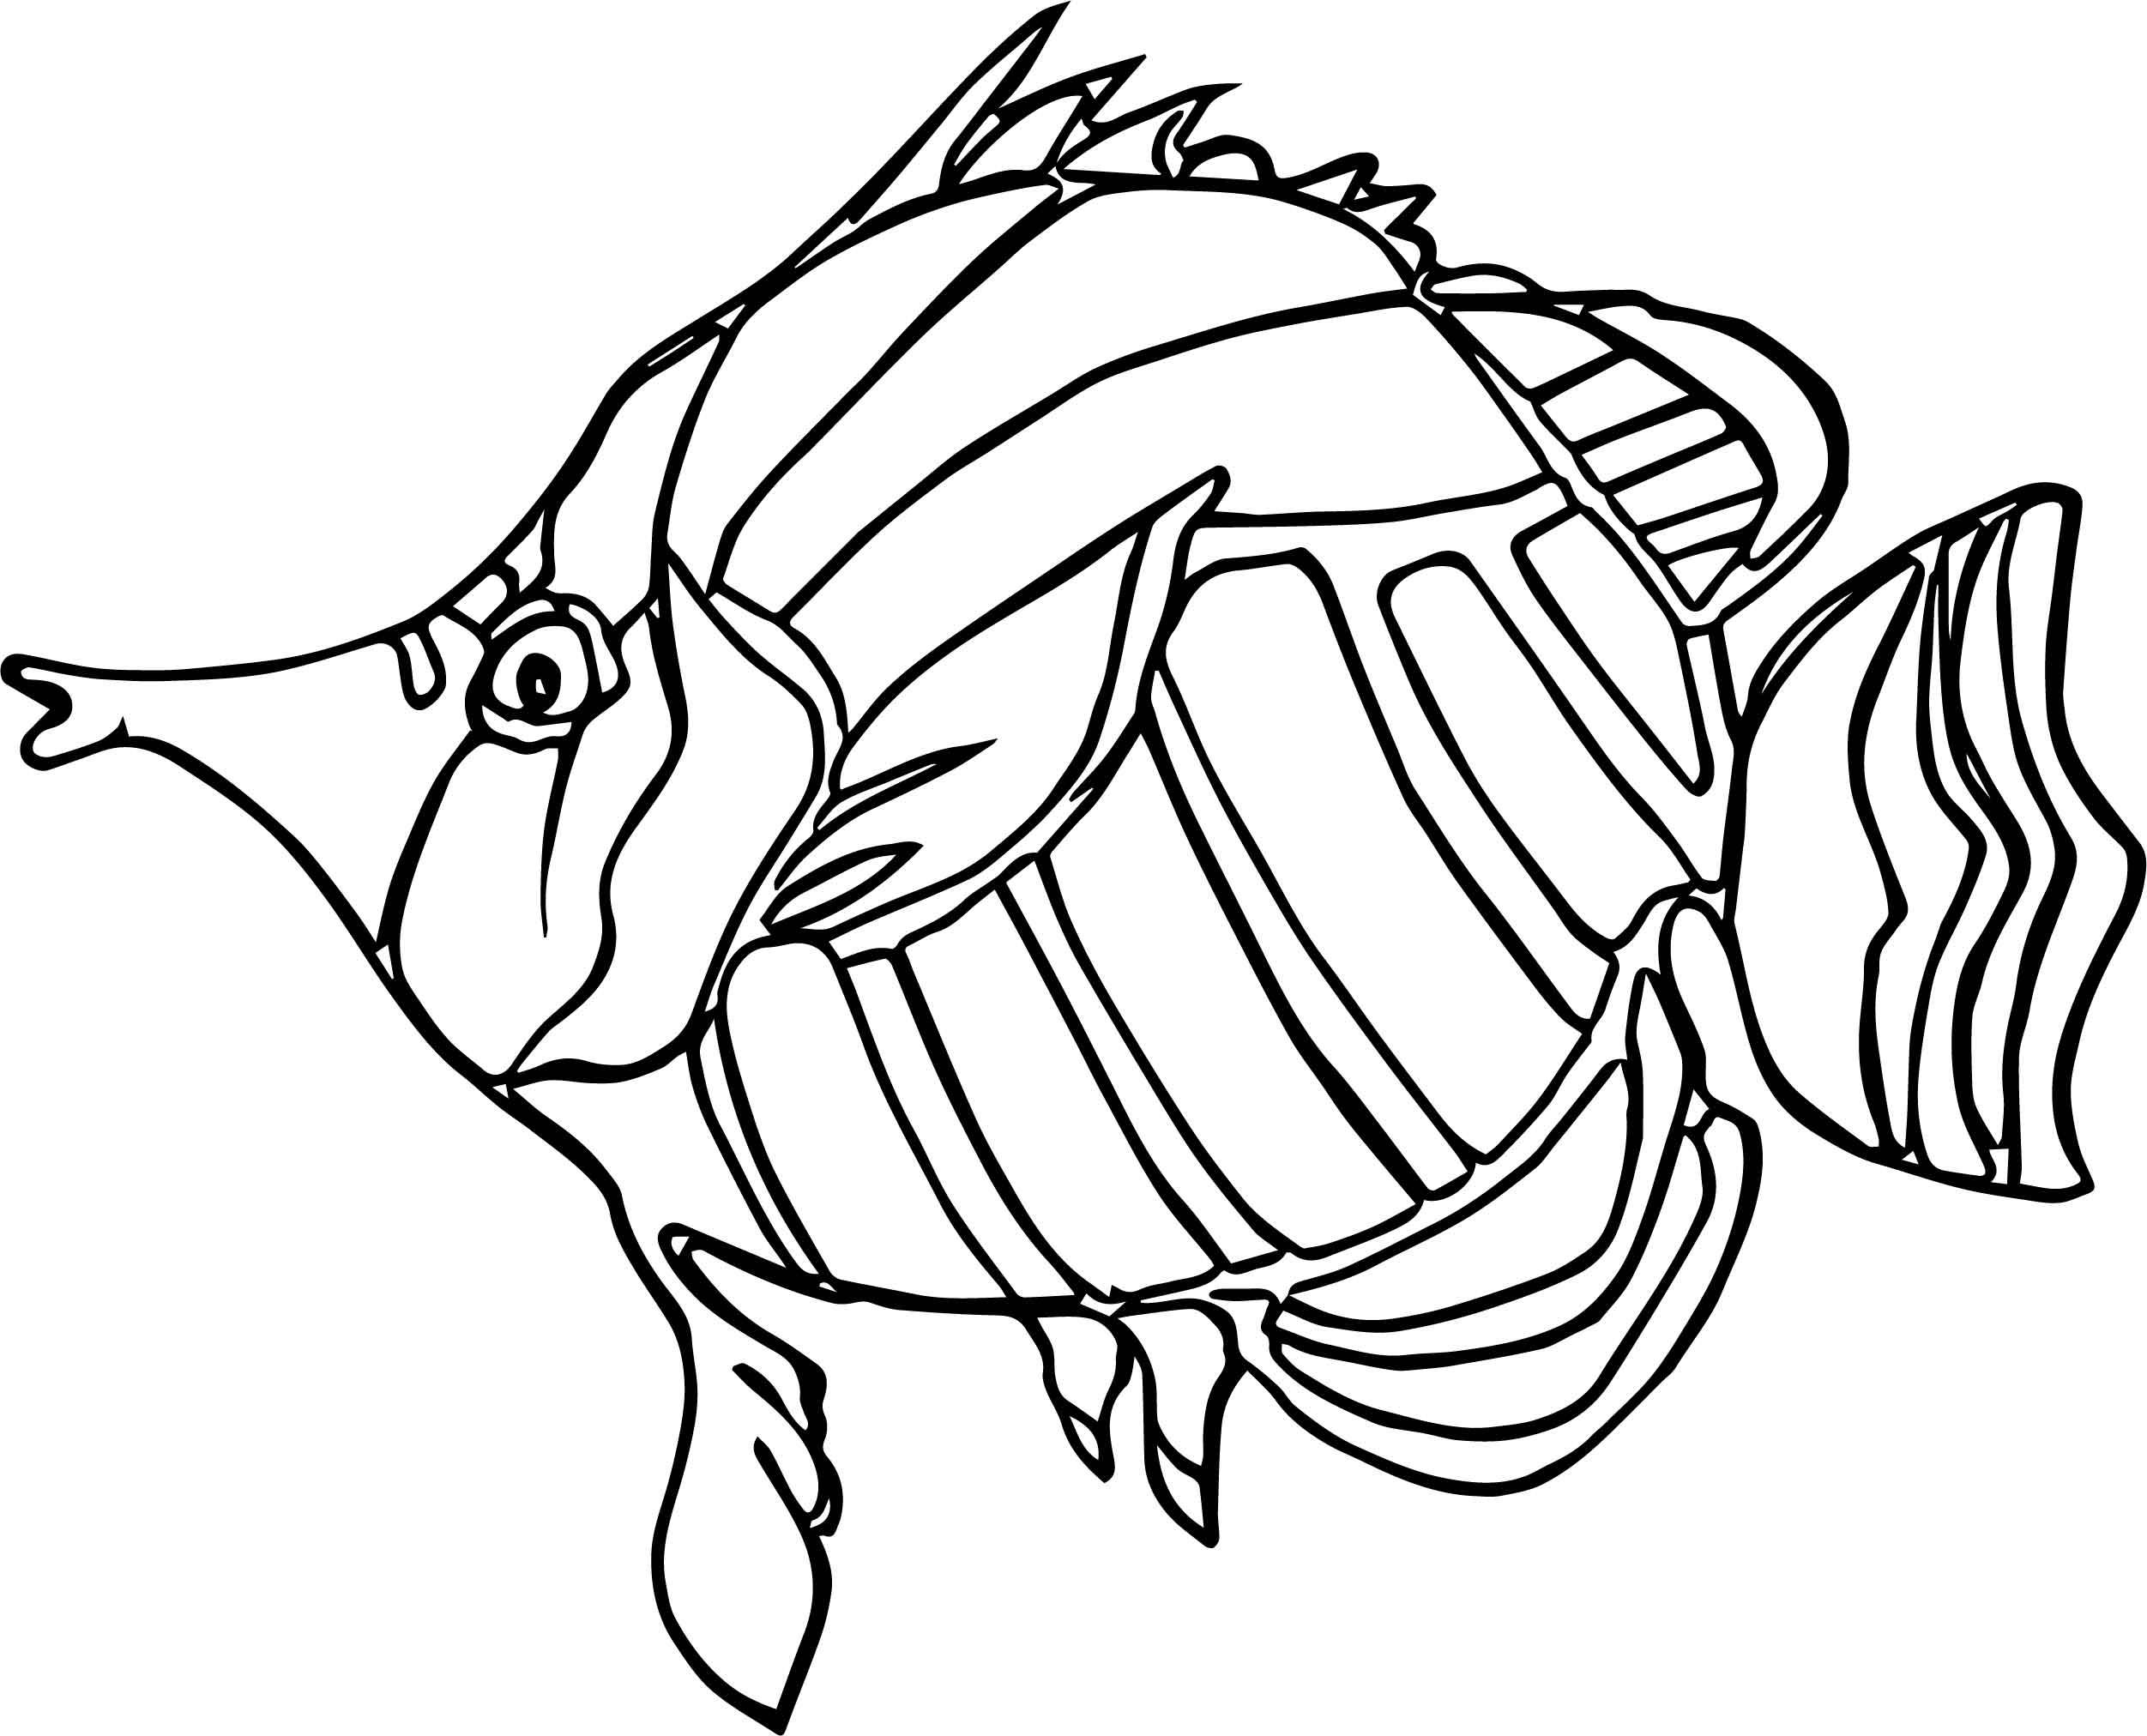 Butterfly fish angelfish from coloring page of angel fish for Printable fish coloring pages